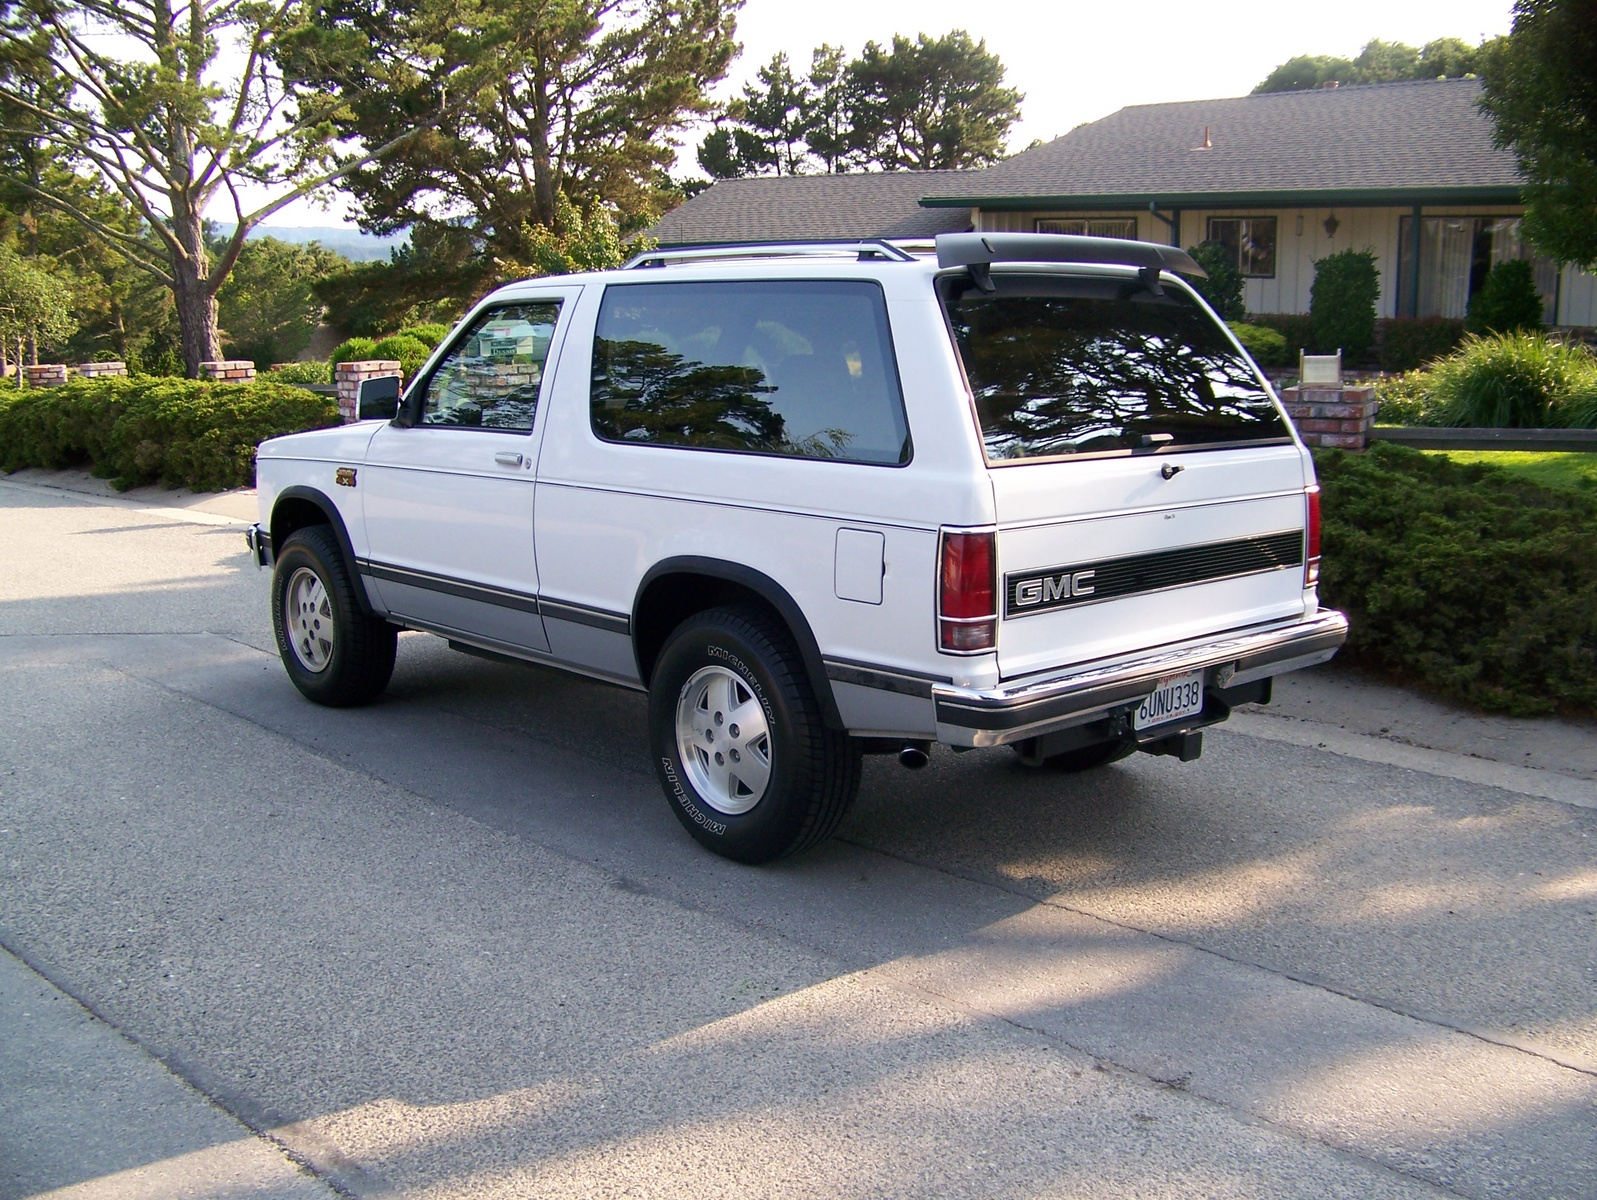 1991 GMC S-15 Jimmy #7